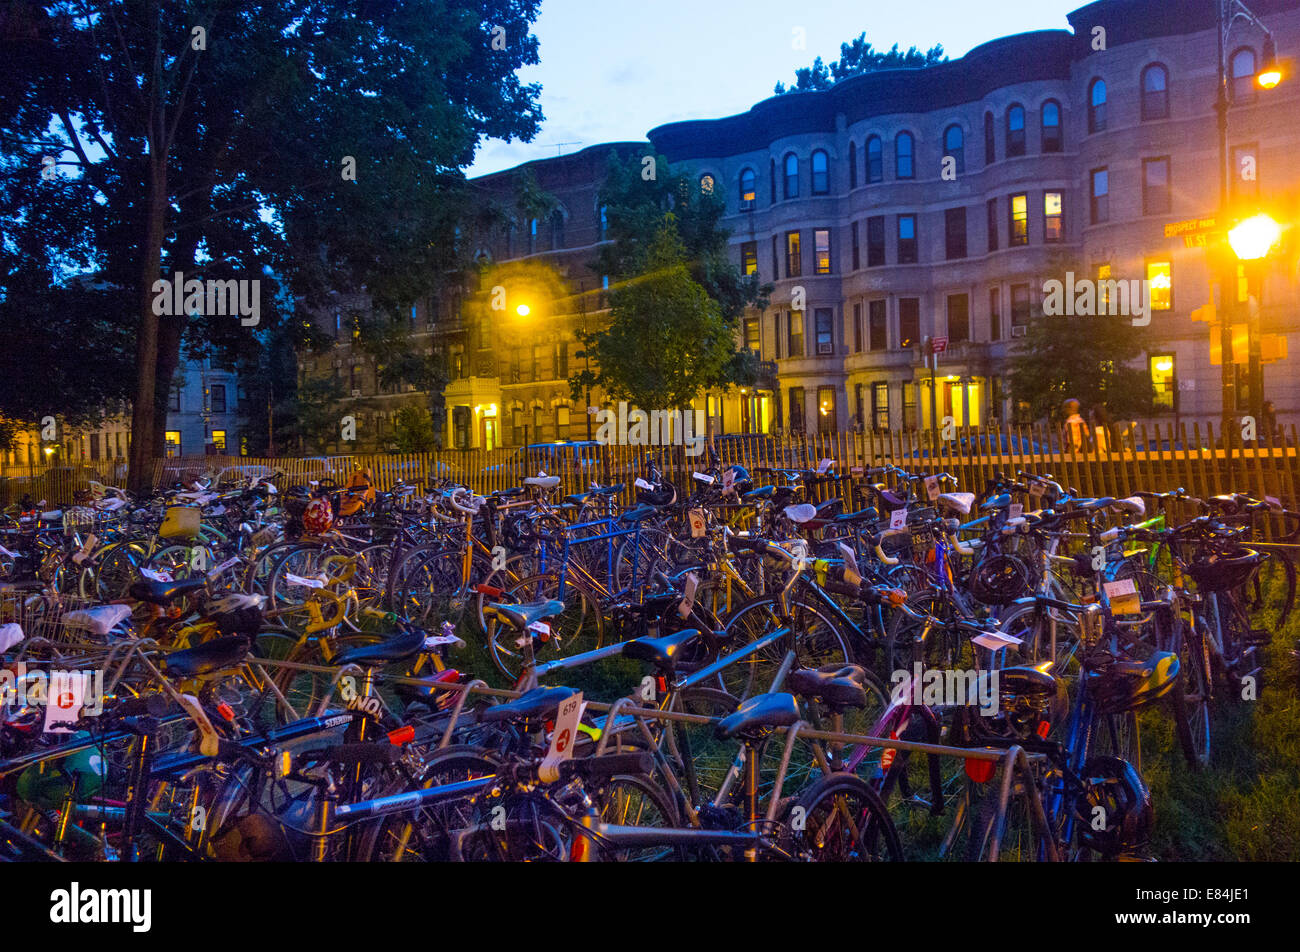 Celebrate Brooklyn New York concerts - Stock Image